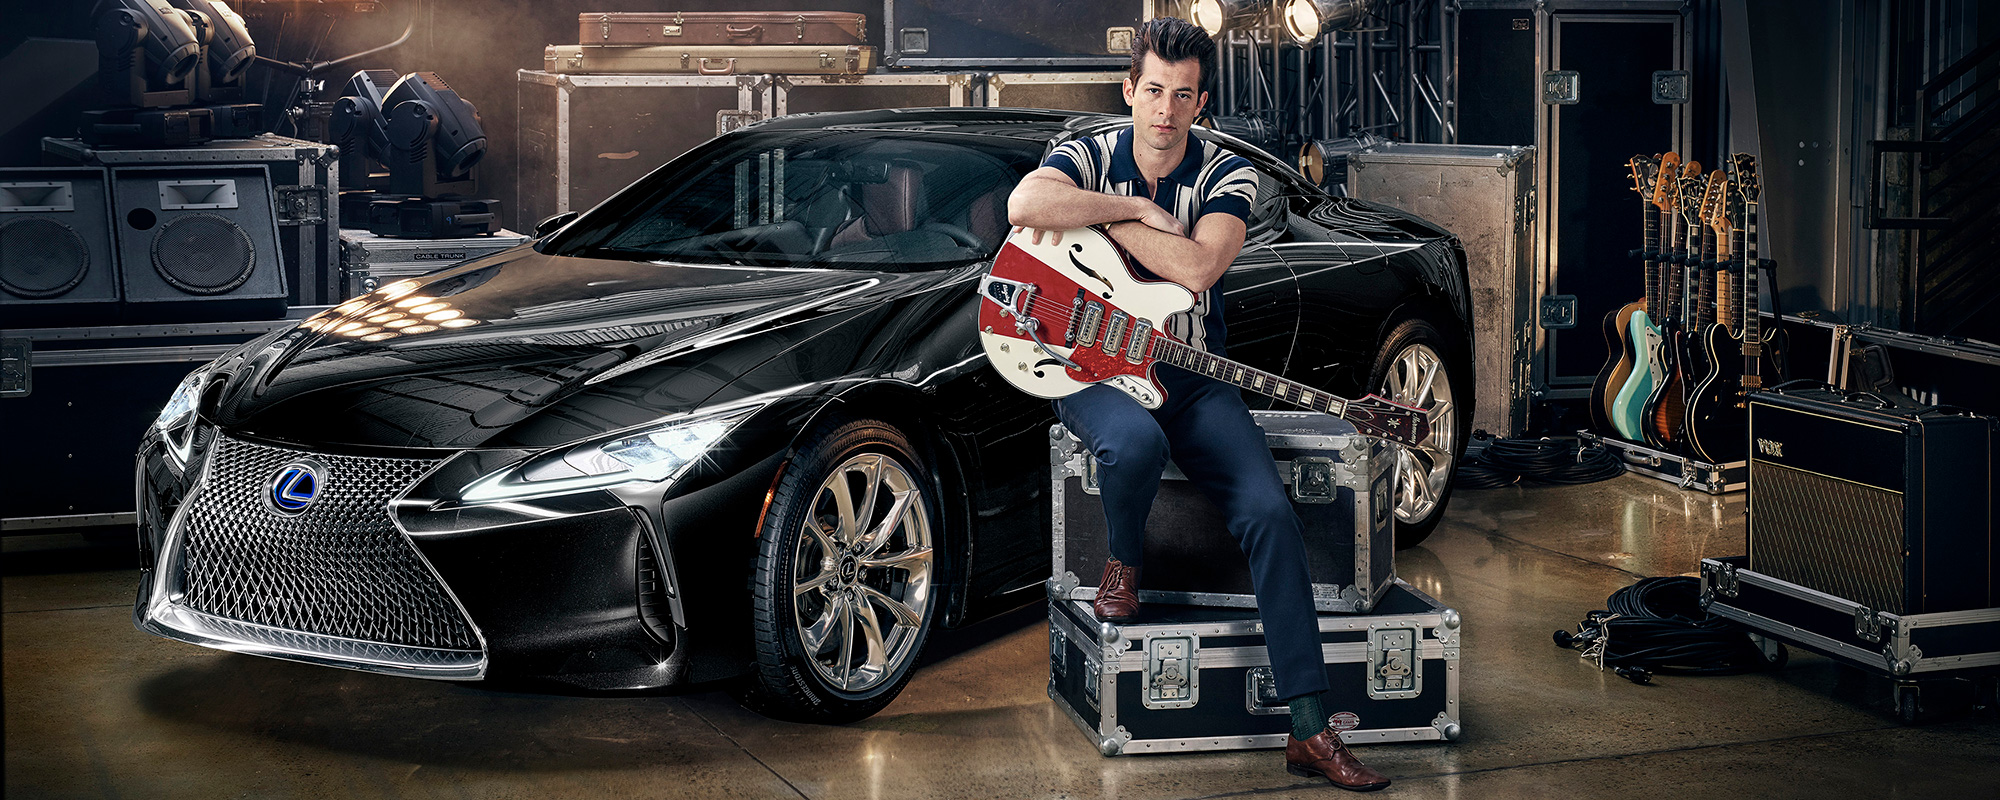 Lexus en Mark Ronson bundelen krachten in 'Make Your Mark': lanceringscampagne van nieuwe Lexus LC